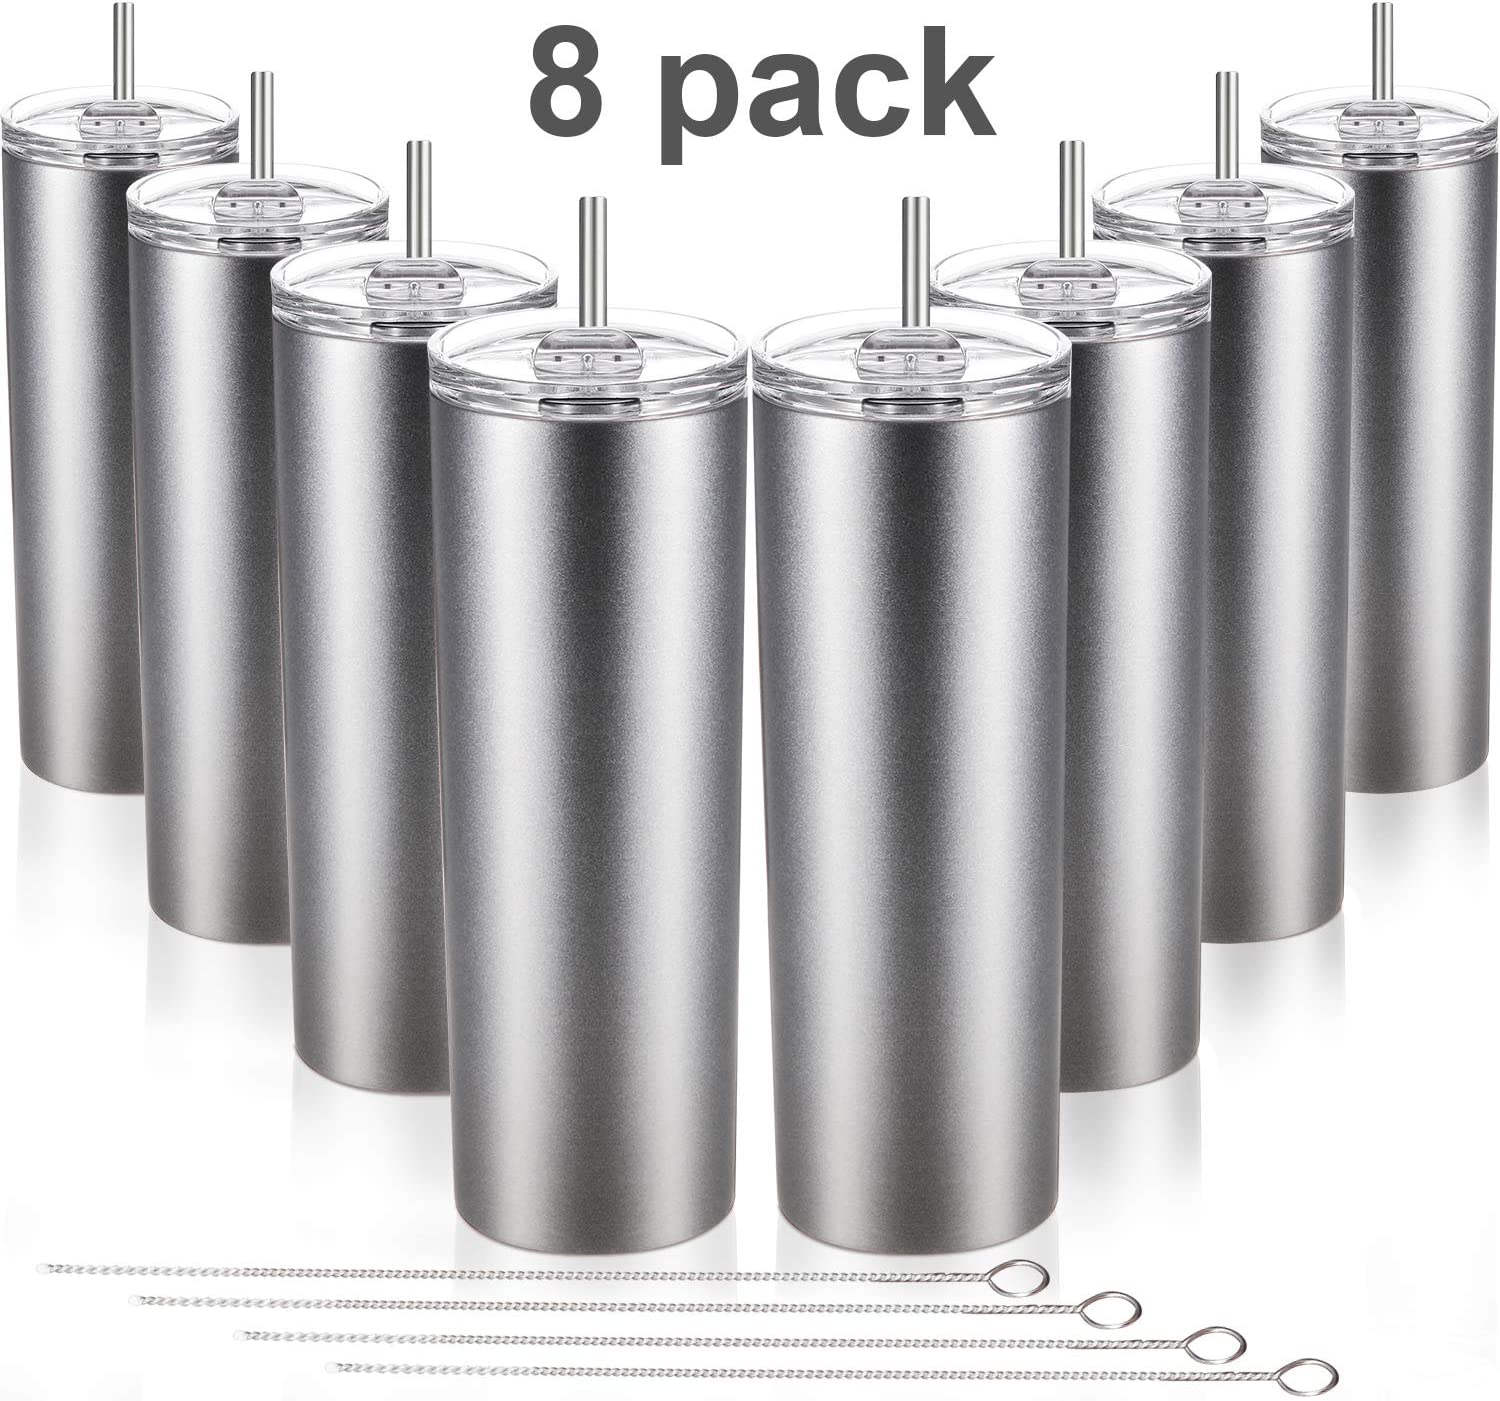 8 Pieces Stainless Steel Skinny Tumbler 20 OZ Double-Insulated Water Tumbler Cup Unbreakable Travel Mug with Lids Straw and Cleaning Brush for Hot or Cold Drinks (Silver)